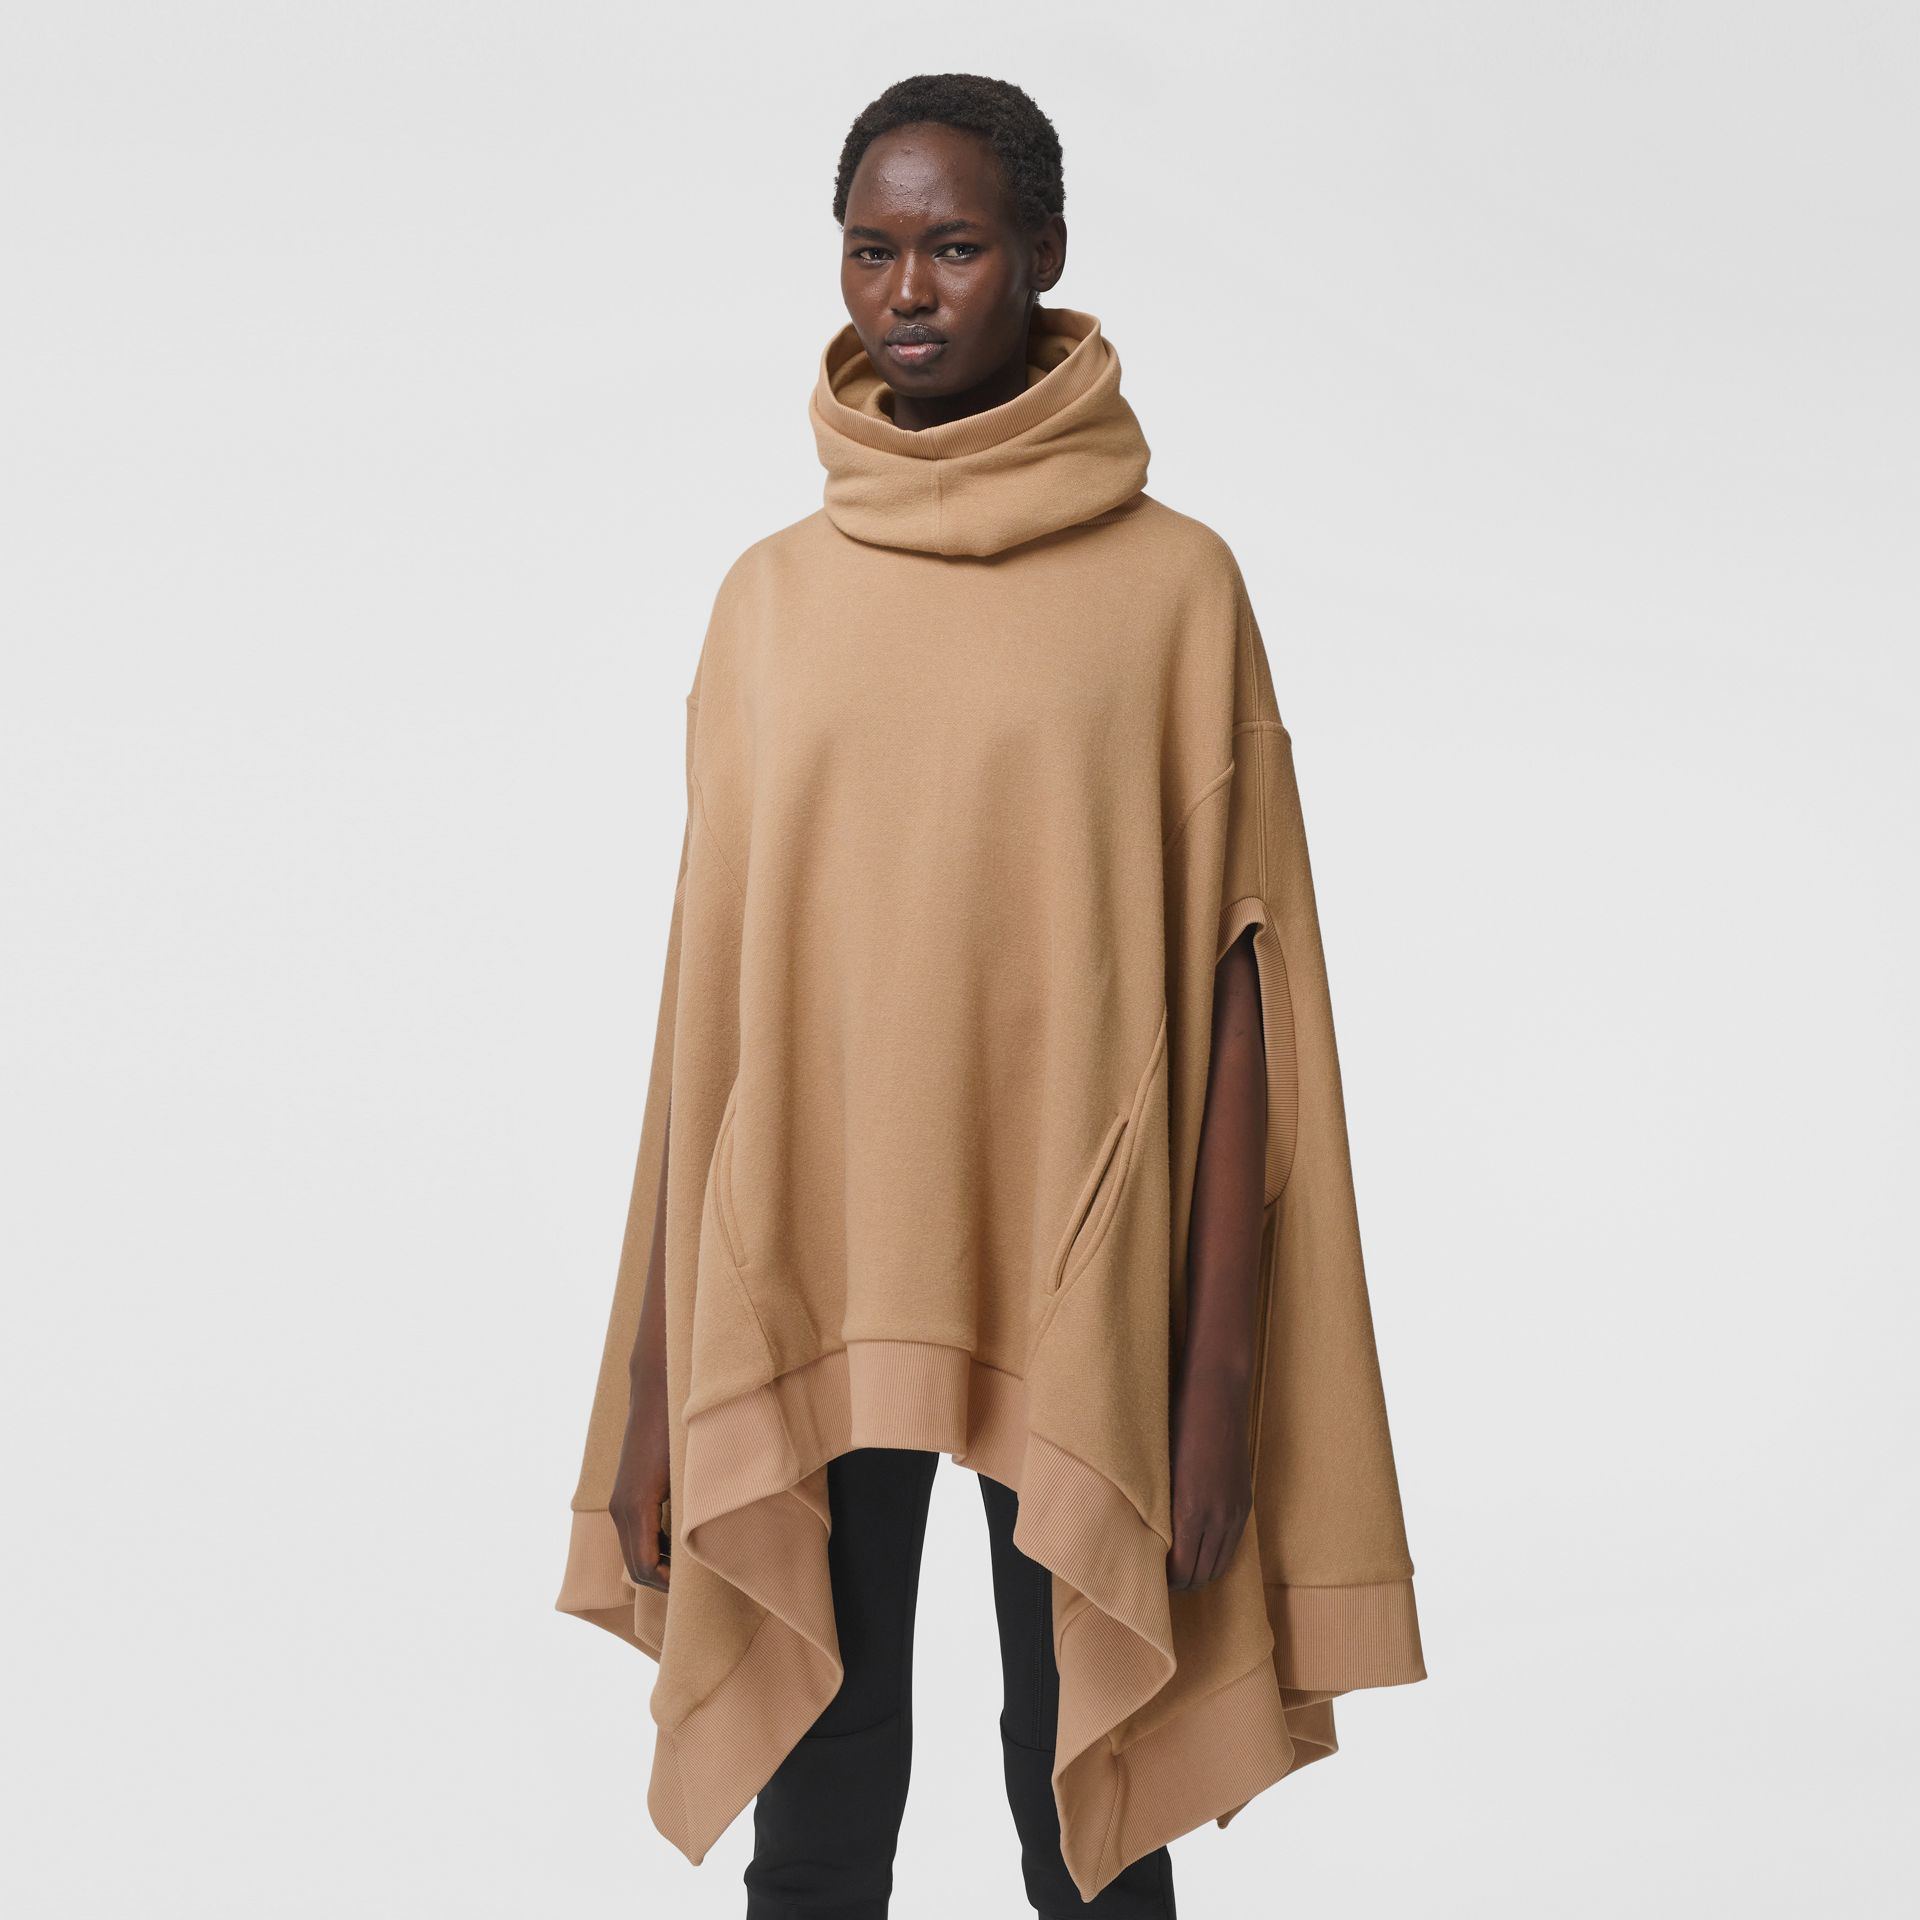 Cut-out Sleeve Jersey Hooded Cape in Camel - Women | Burberry Canada - gallery image 4